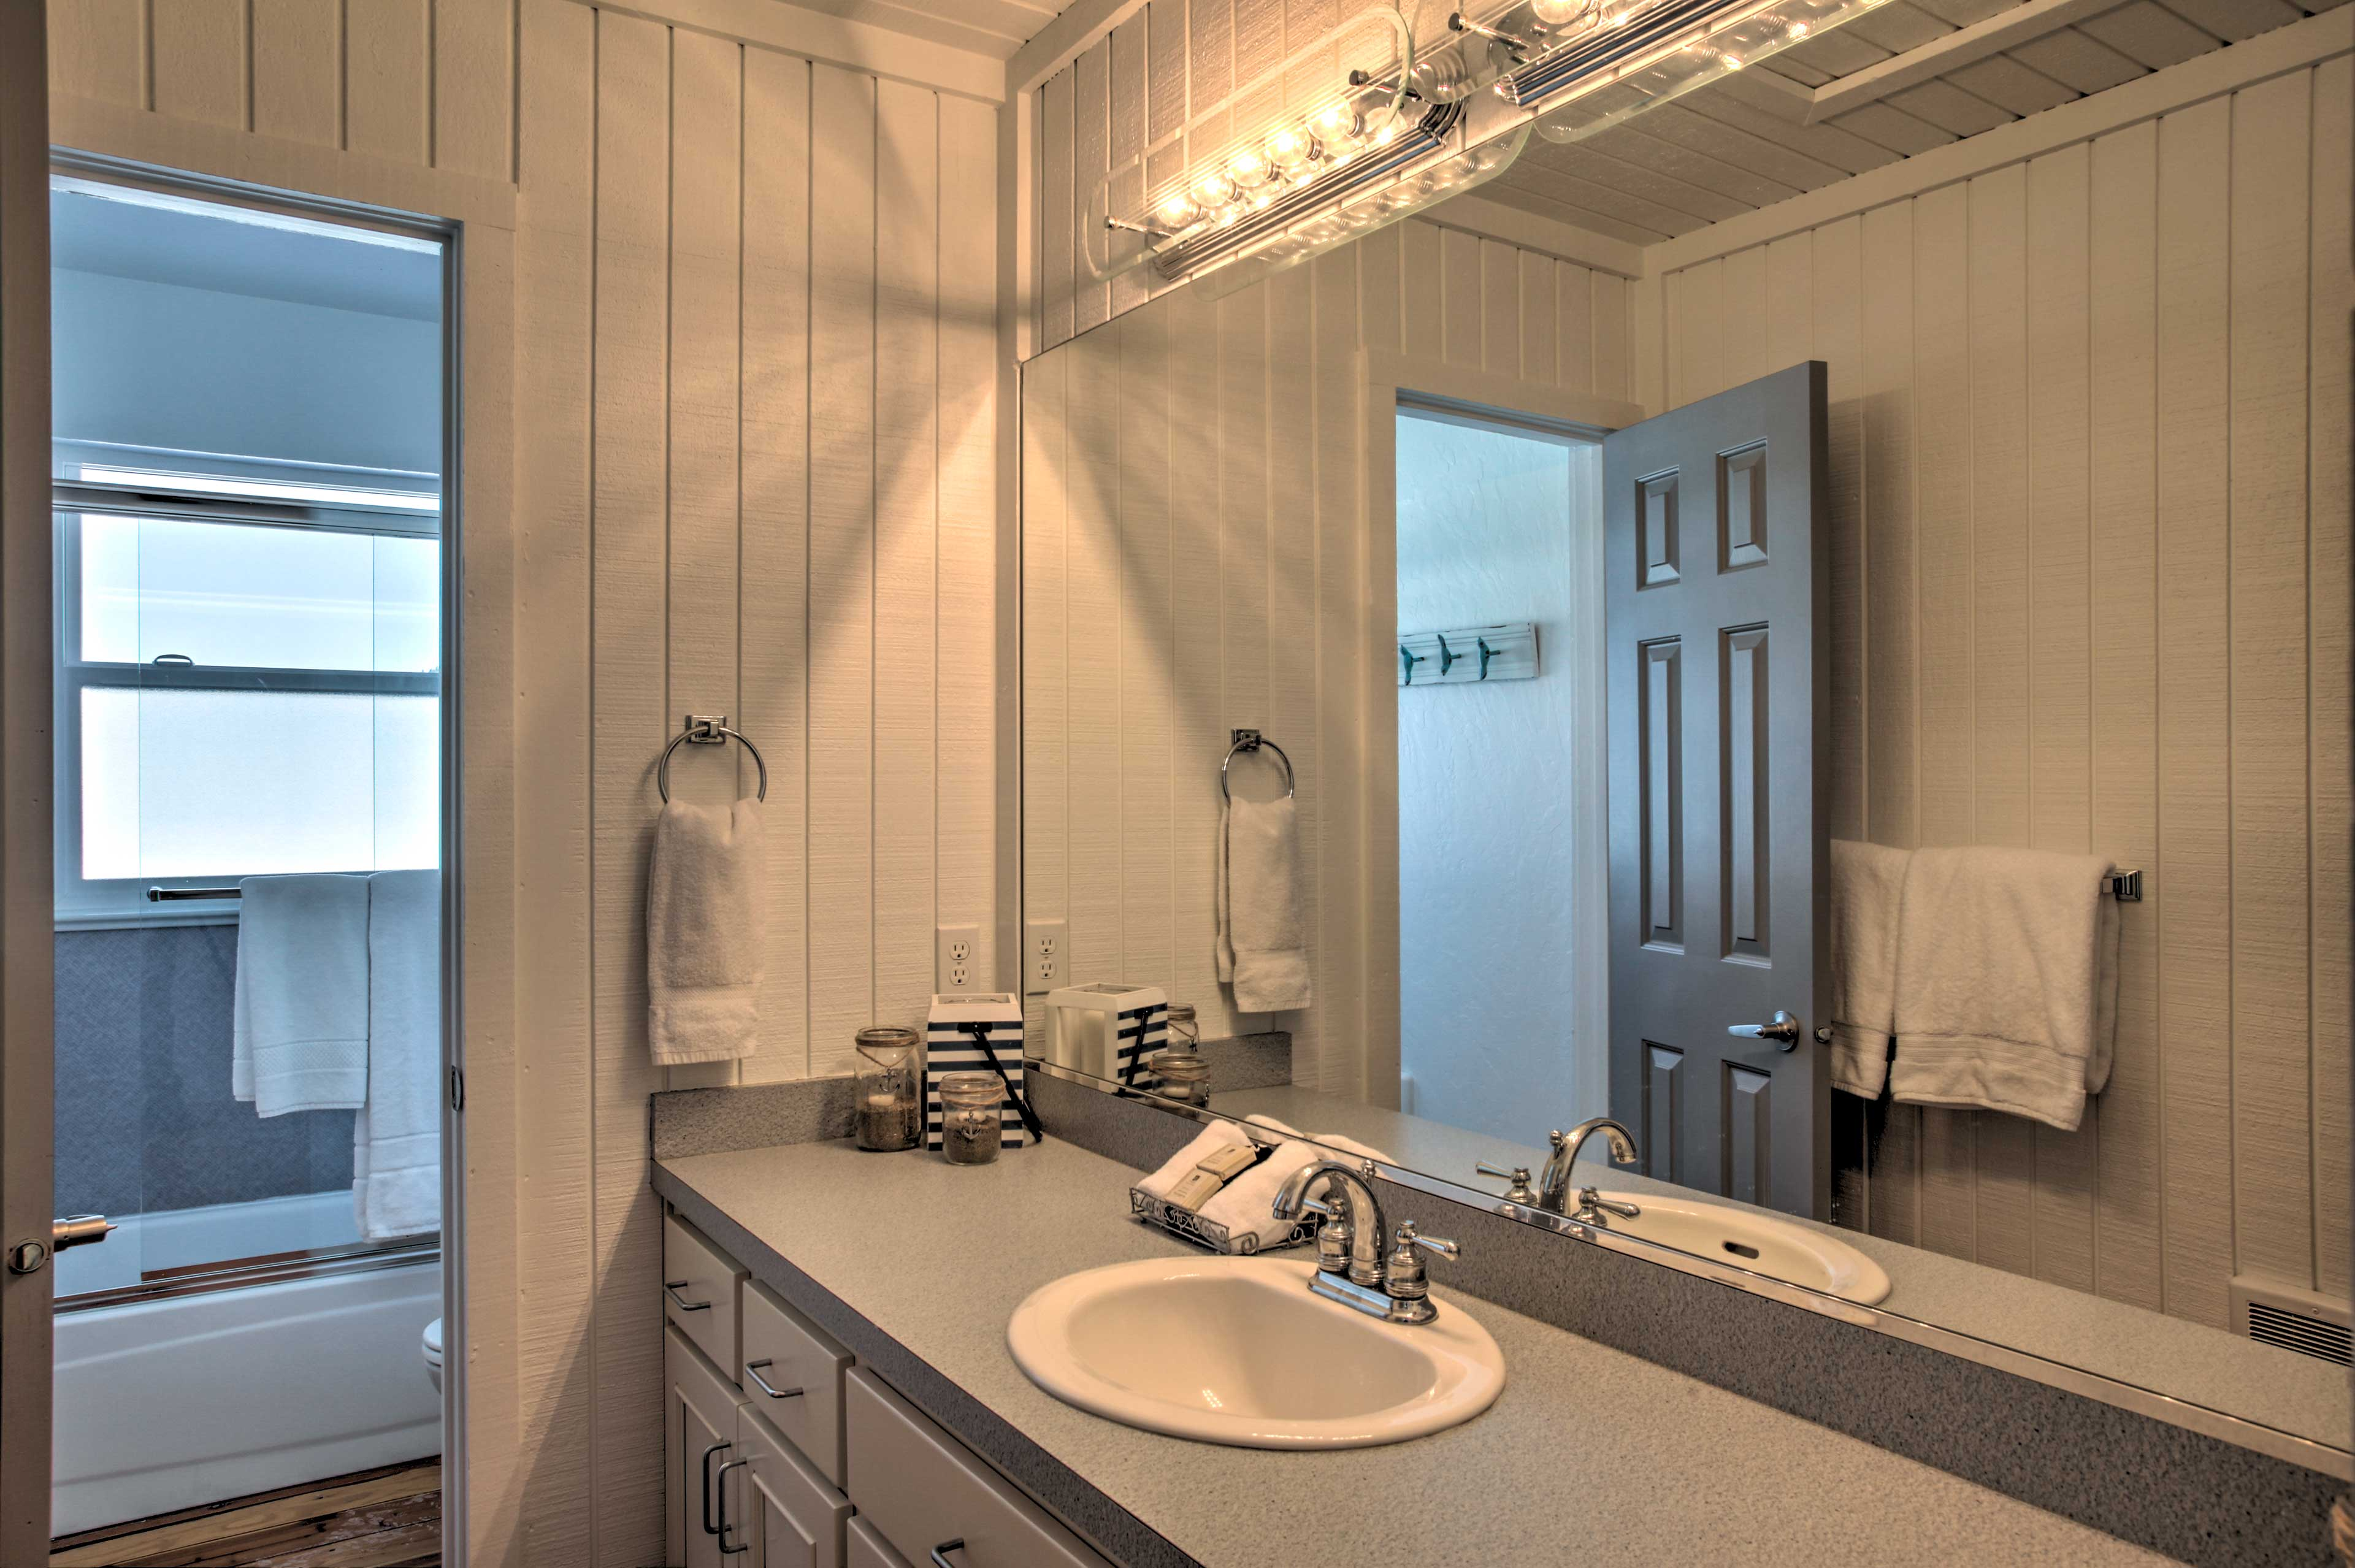 Freshen up in one of 4 full bathrooms.